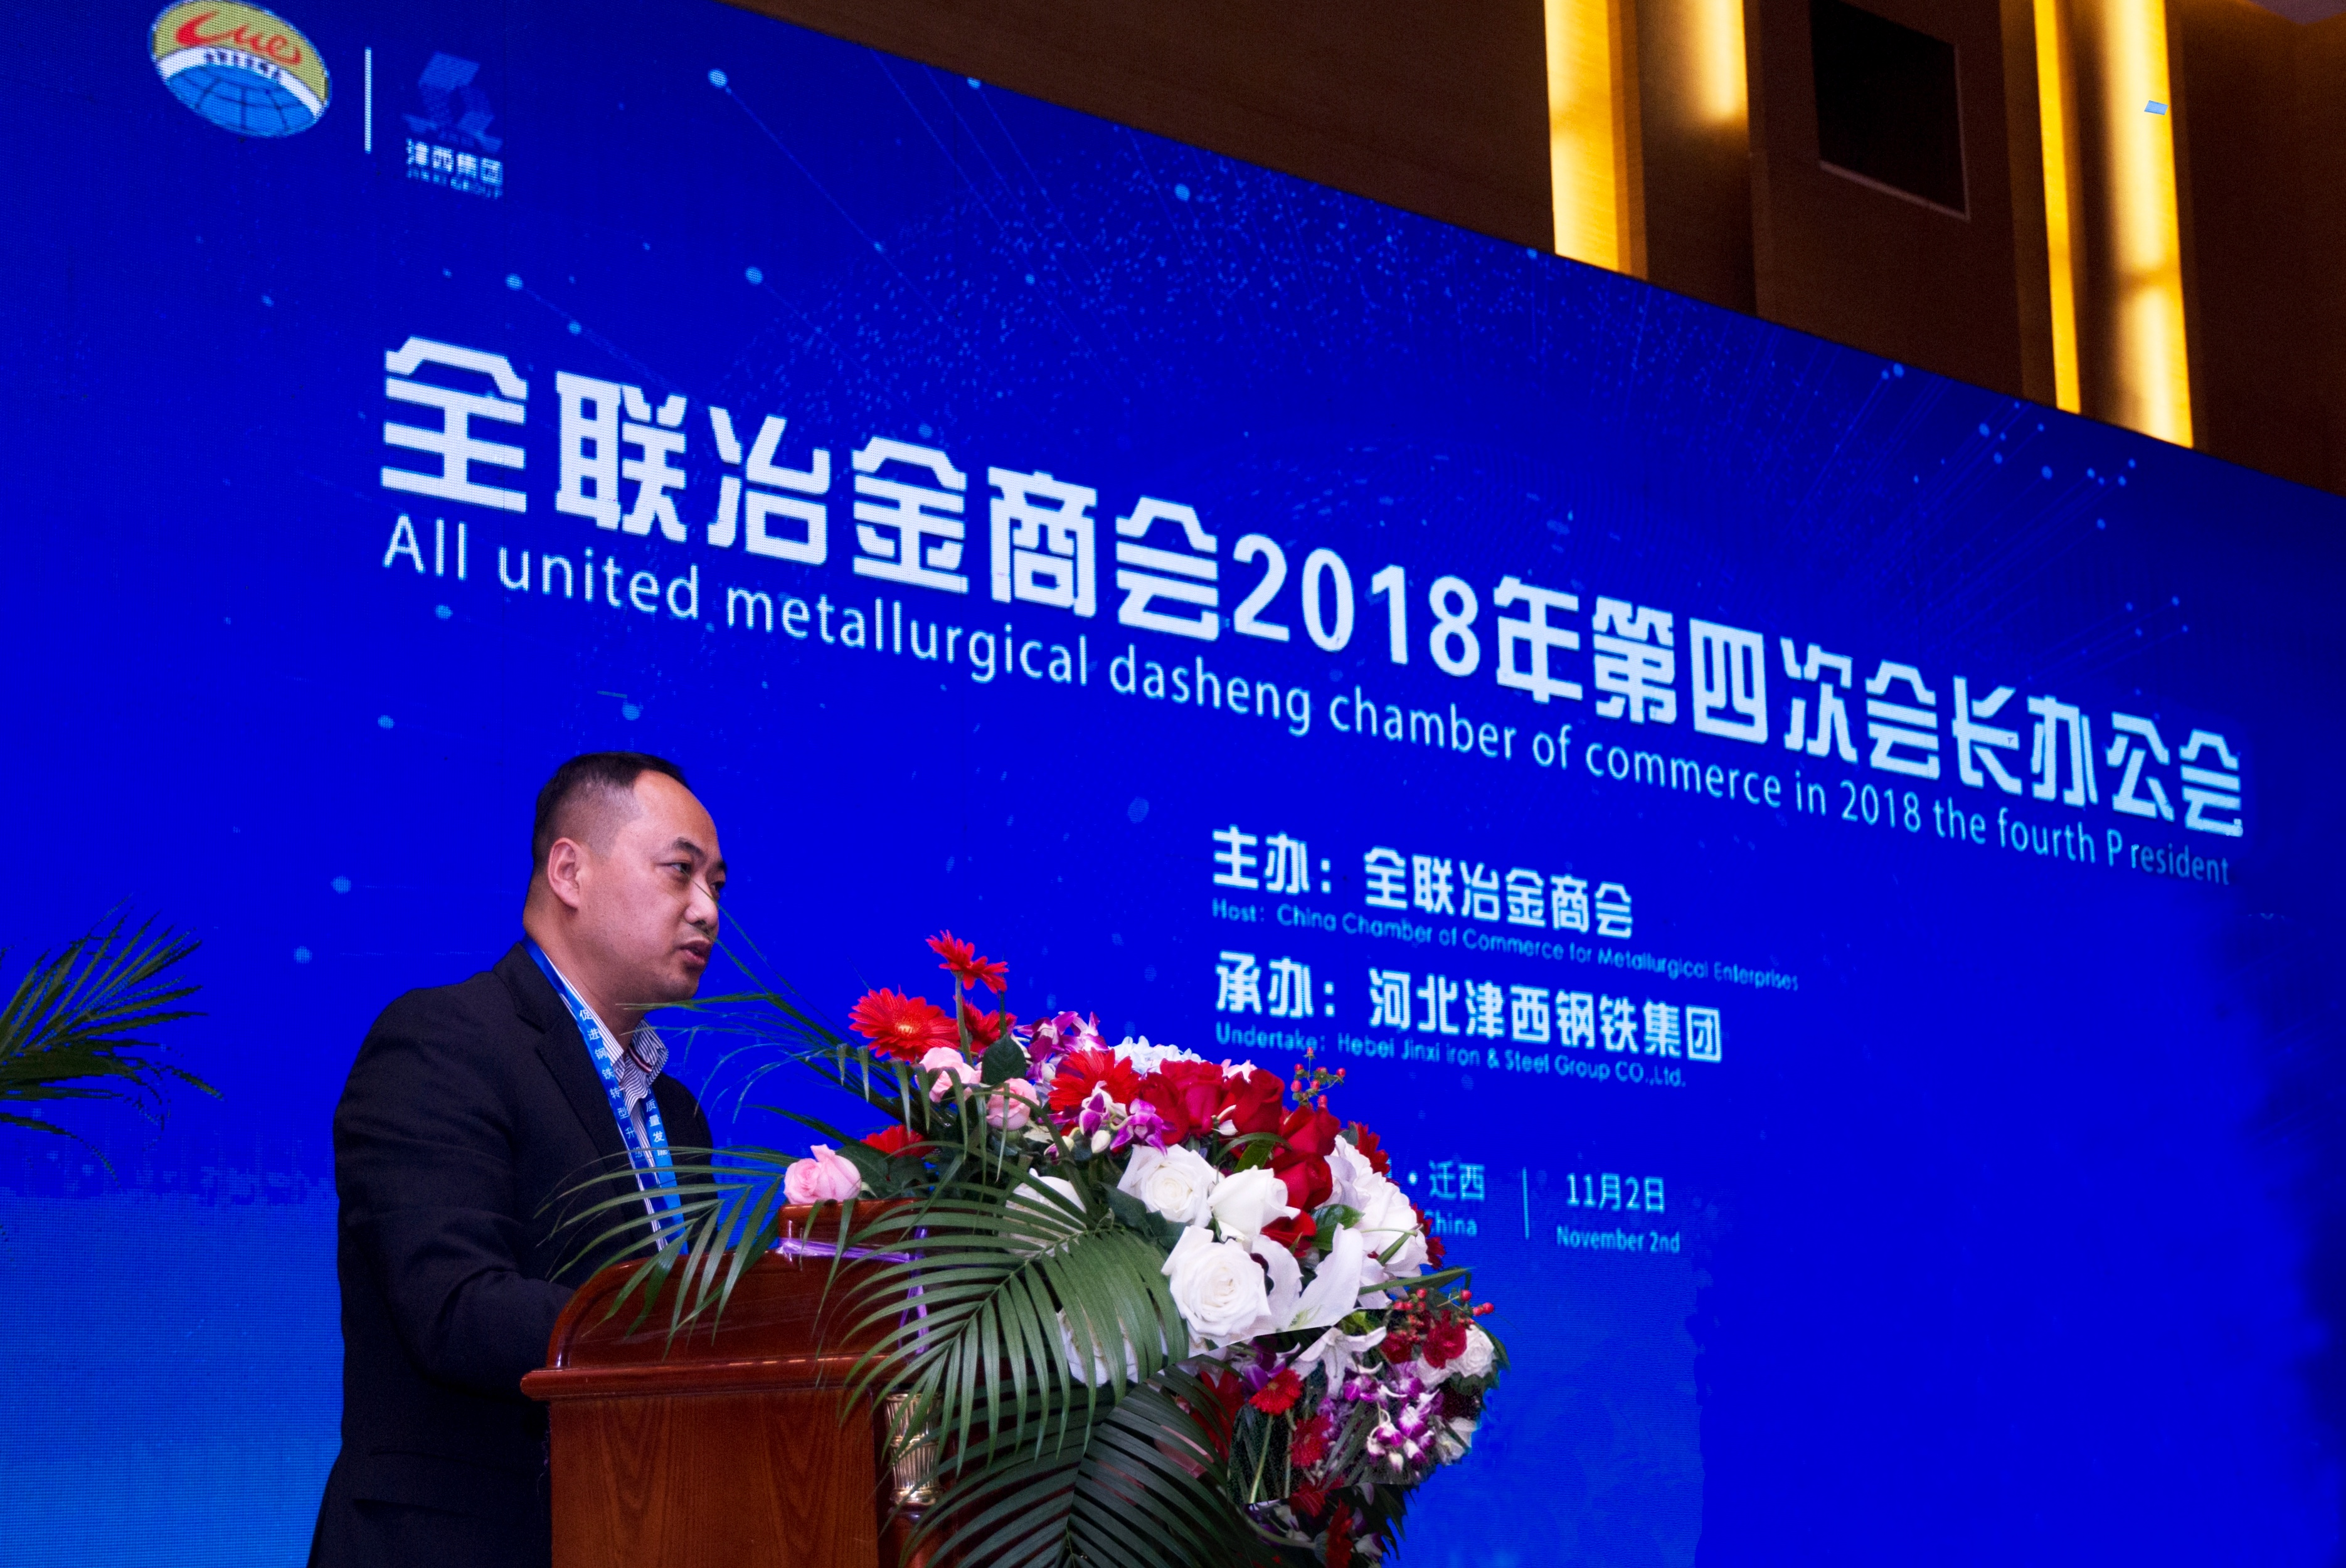 CHINA METALLURGICAL COMMERCE ASSOCIATION HOLD THE 2018 4TH MEETING  IN JING XI HEBEI CHINA ON NOVERMBER 3,2018.